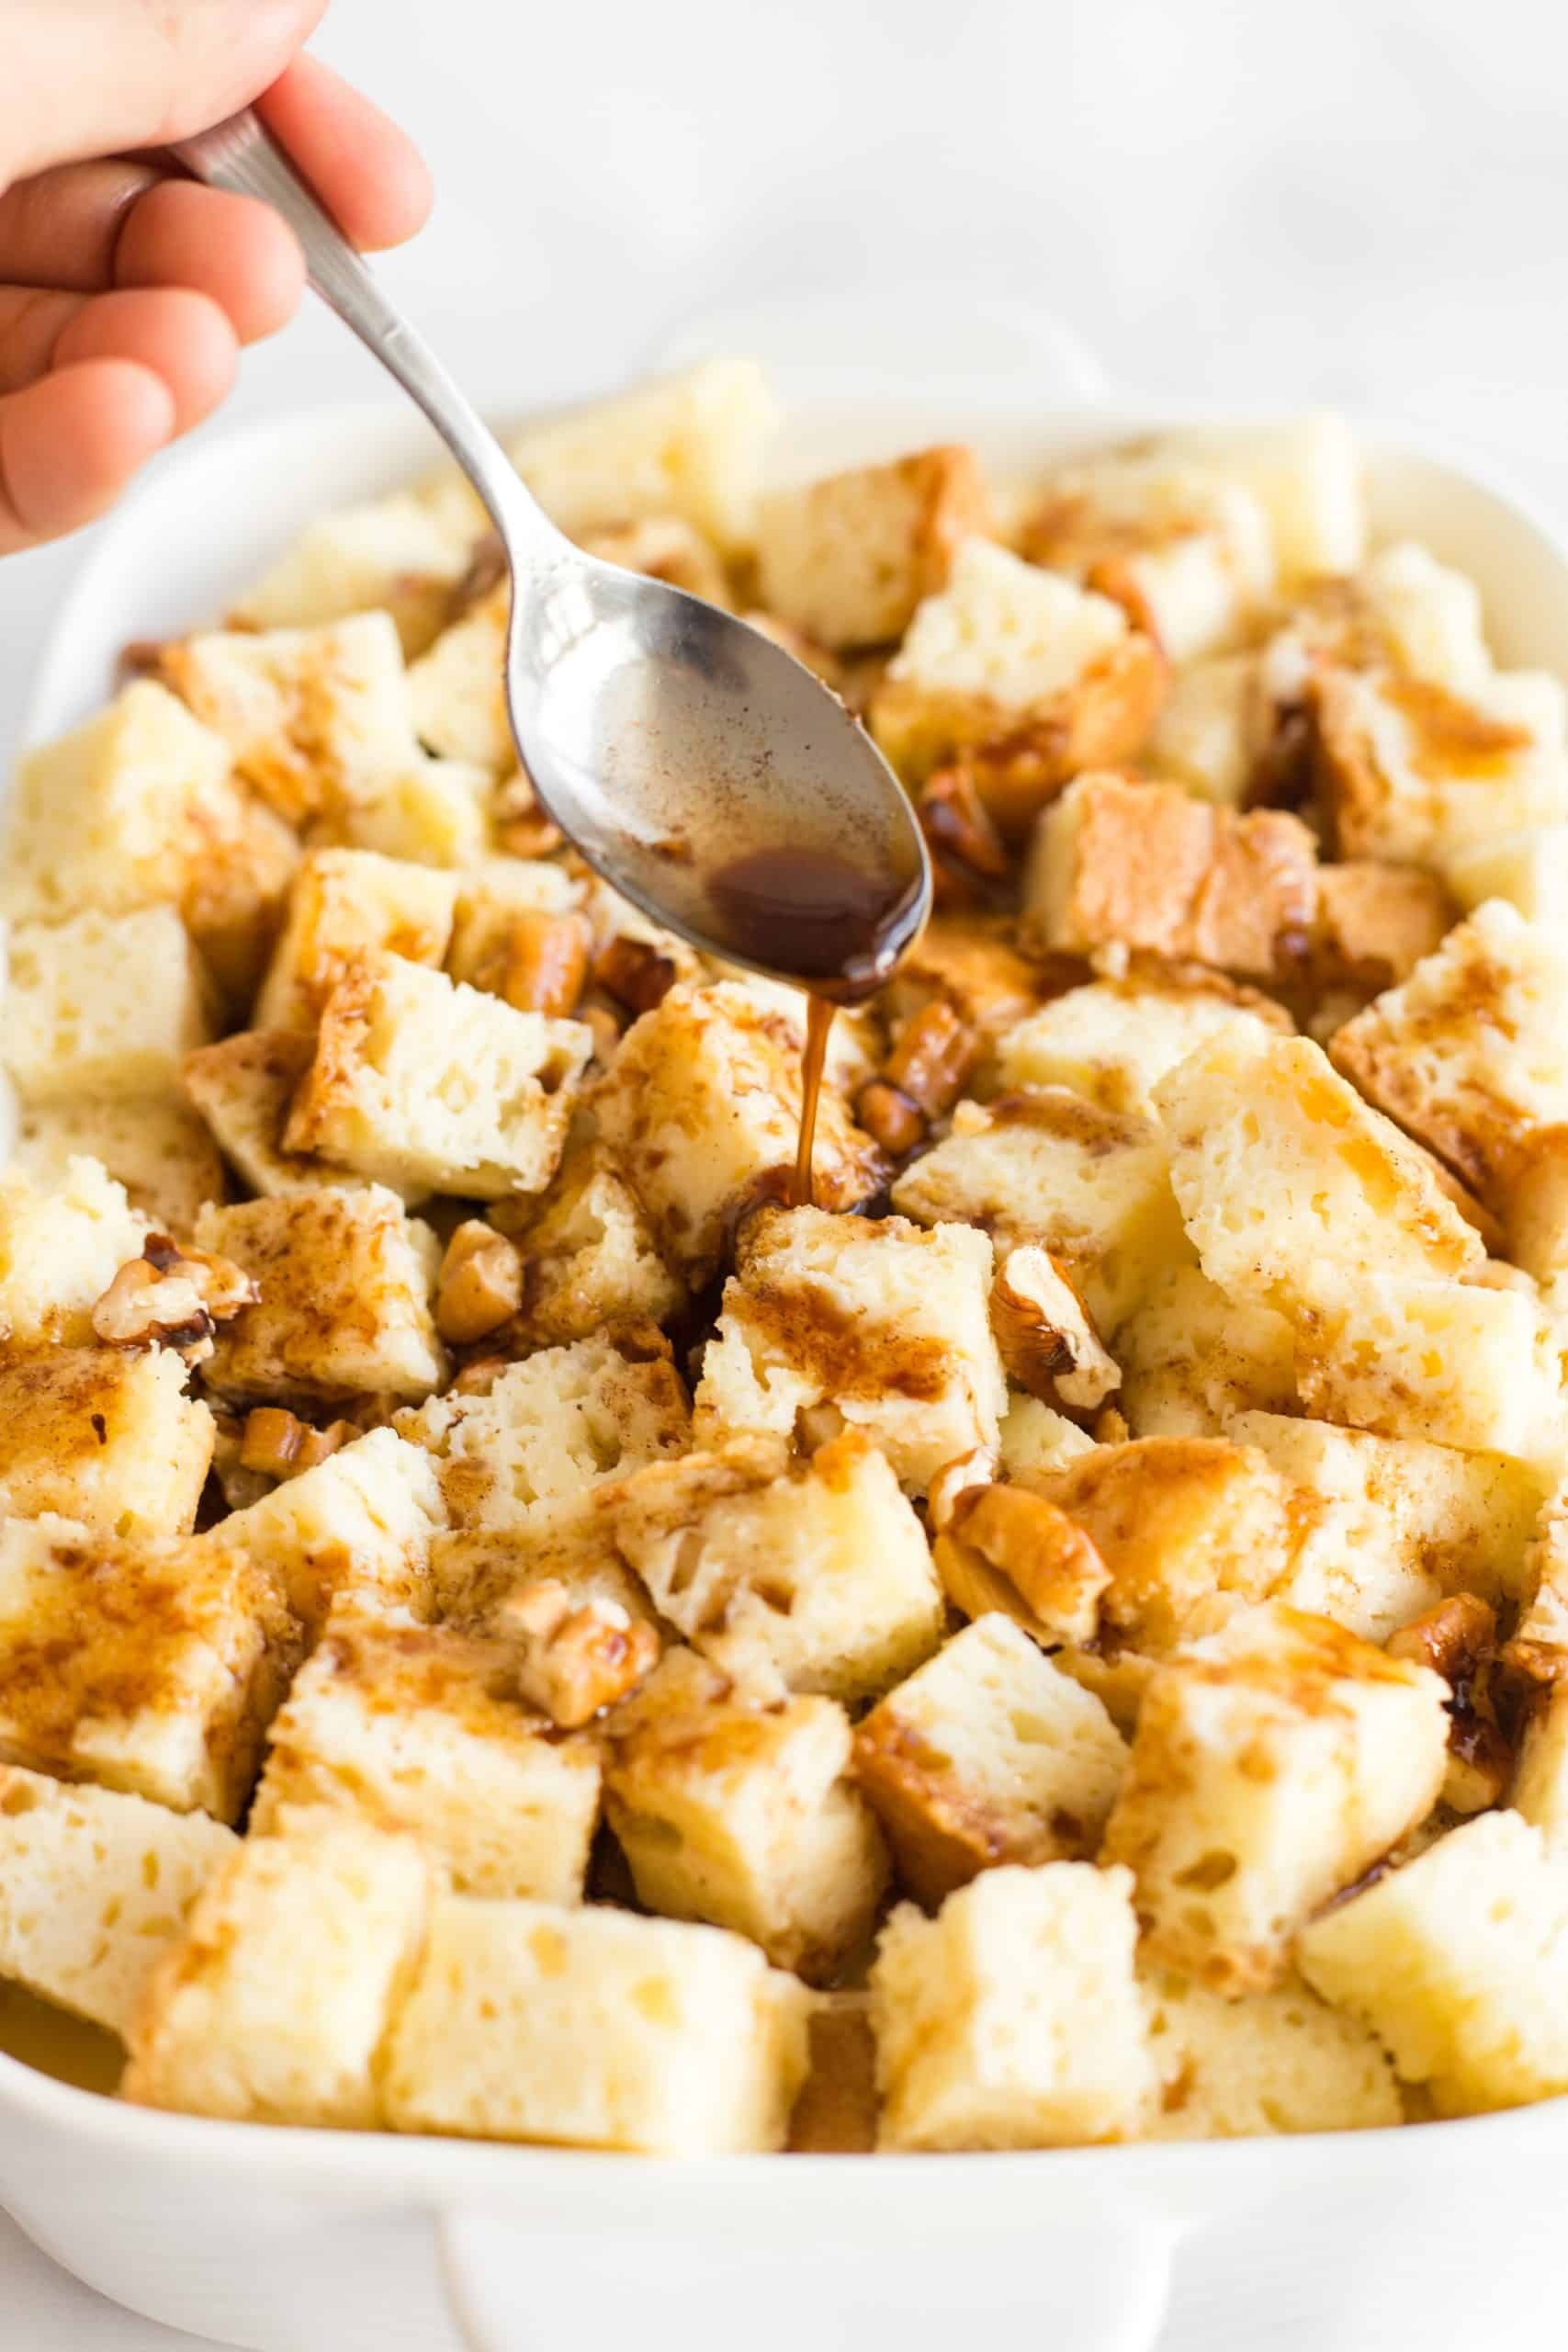 Drizzling cinnamon-sugar topping mixture over bread chunks.